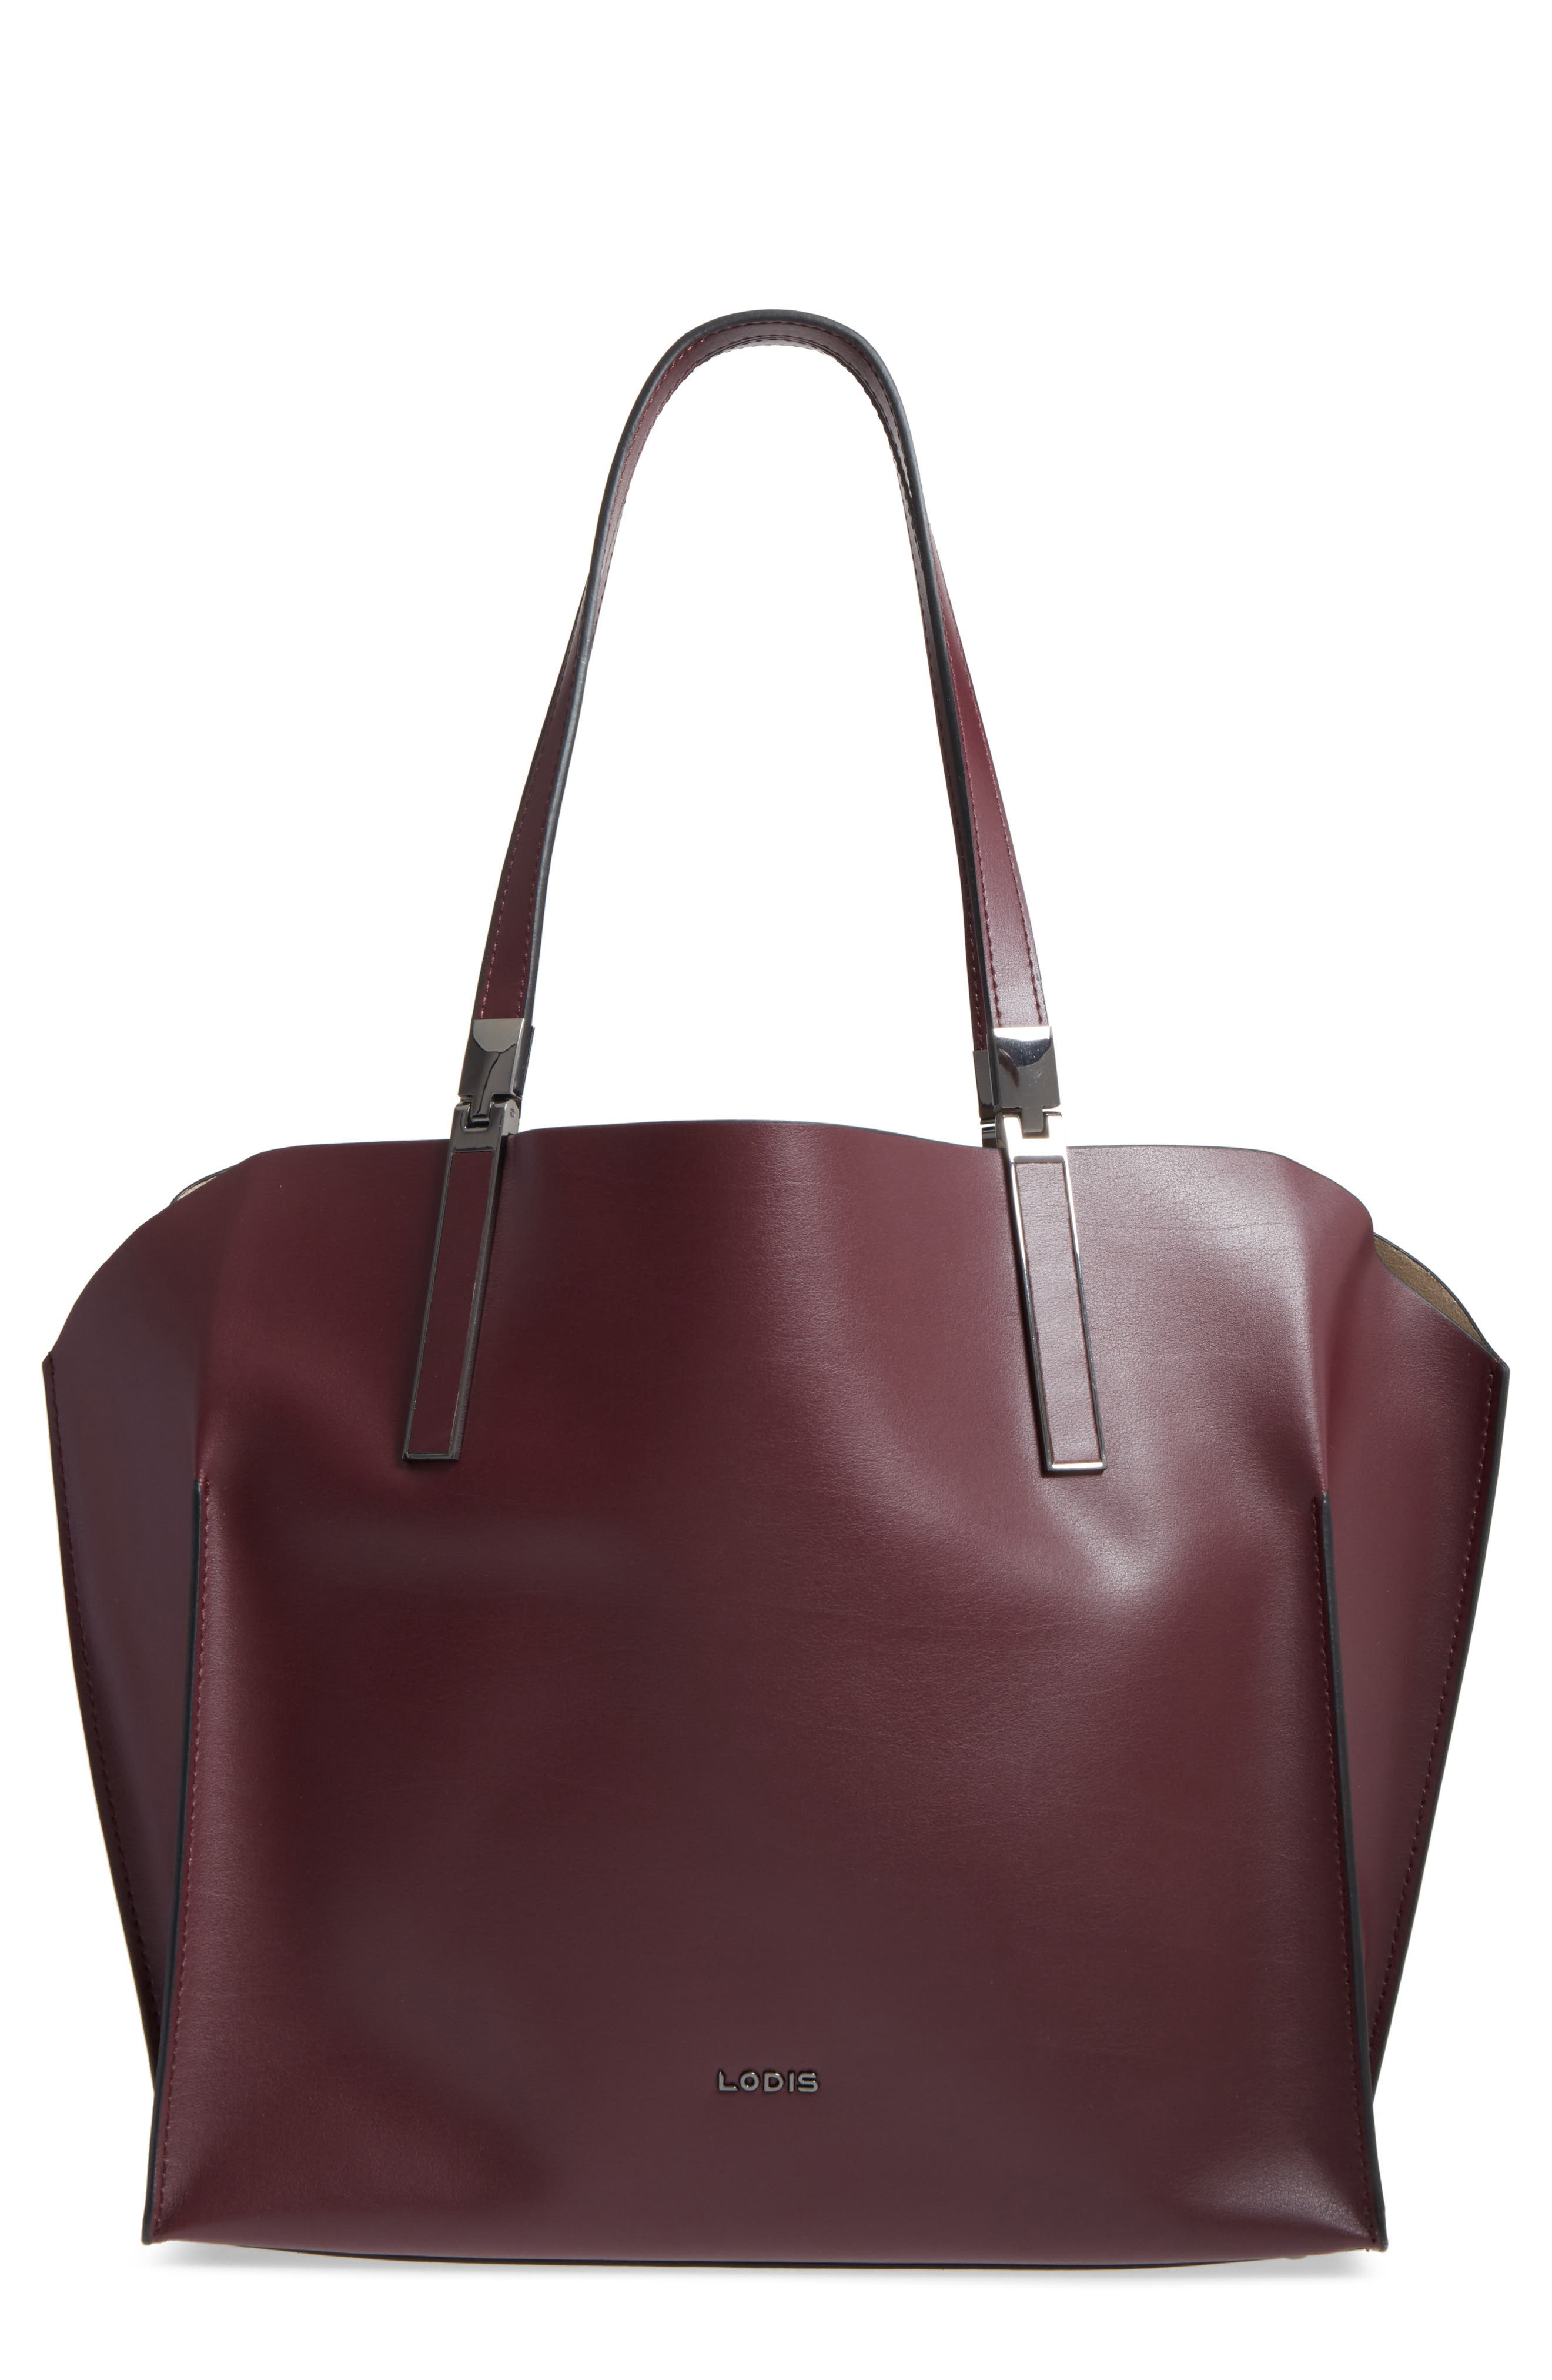 LODIS Silicon Valley Collection Under Lock & Key - Anita RFID East/West Leather Satchel,                         Main,                         color, Chianti/ Taupe